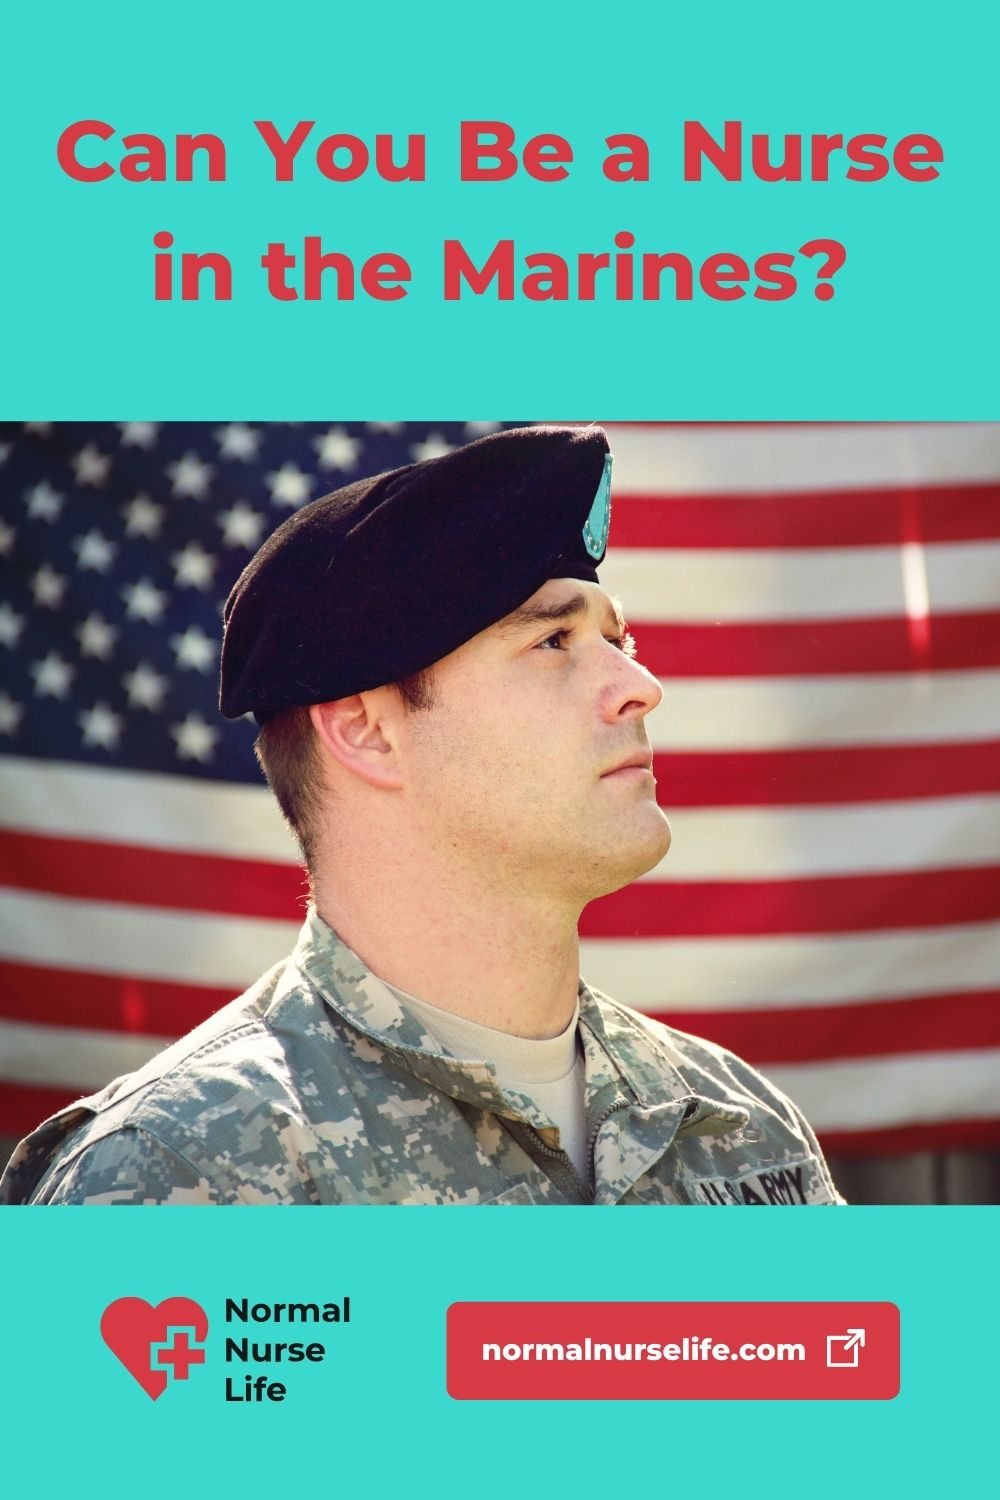 Can you be a nurse in the marines or not